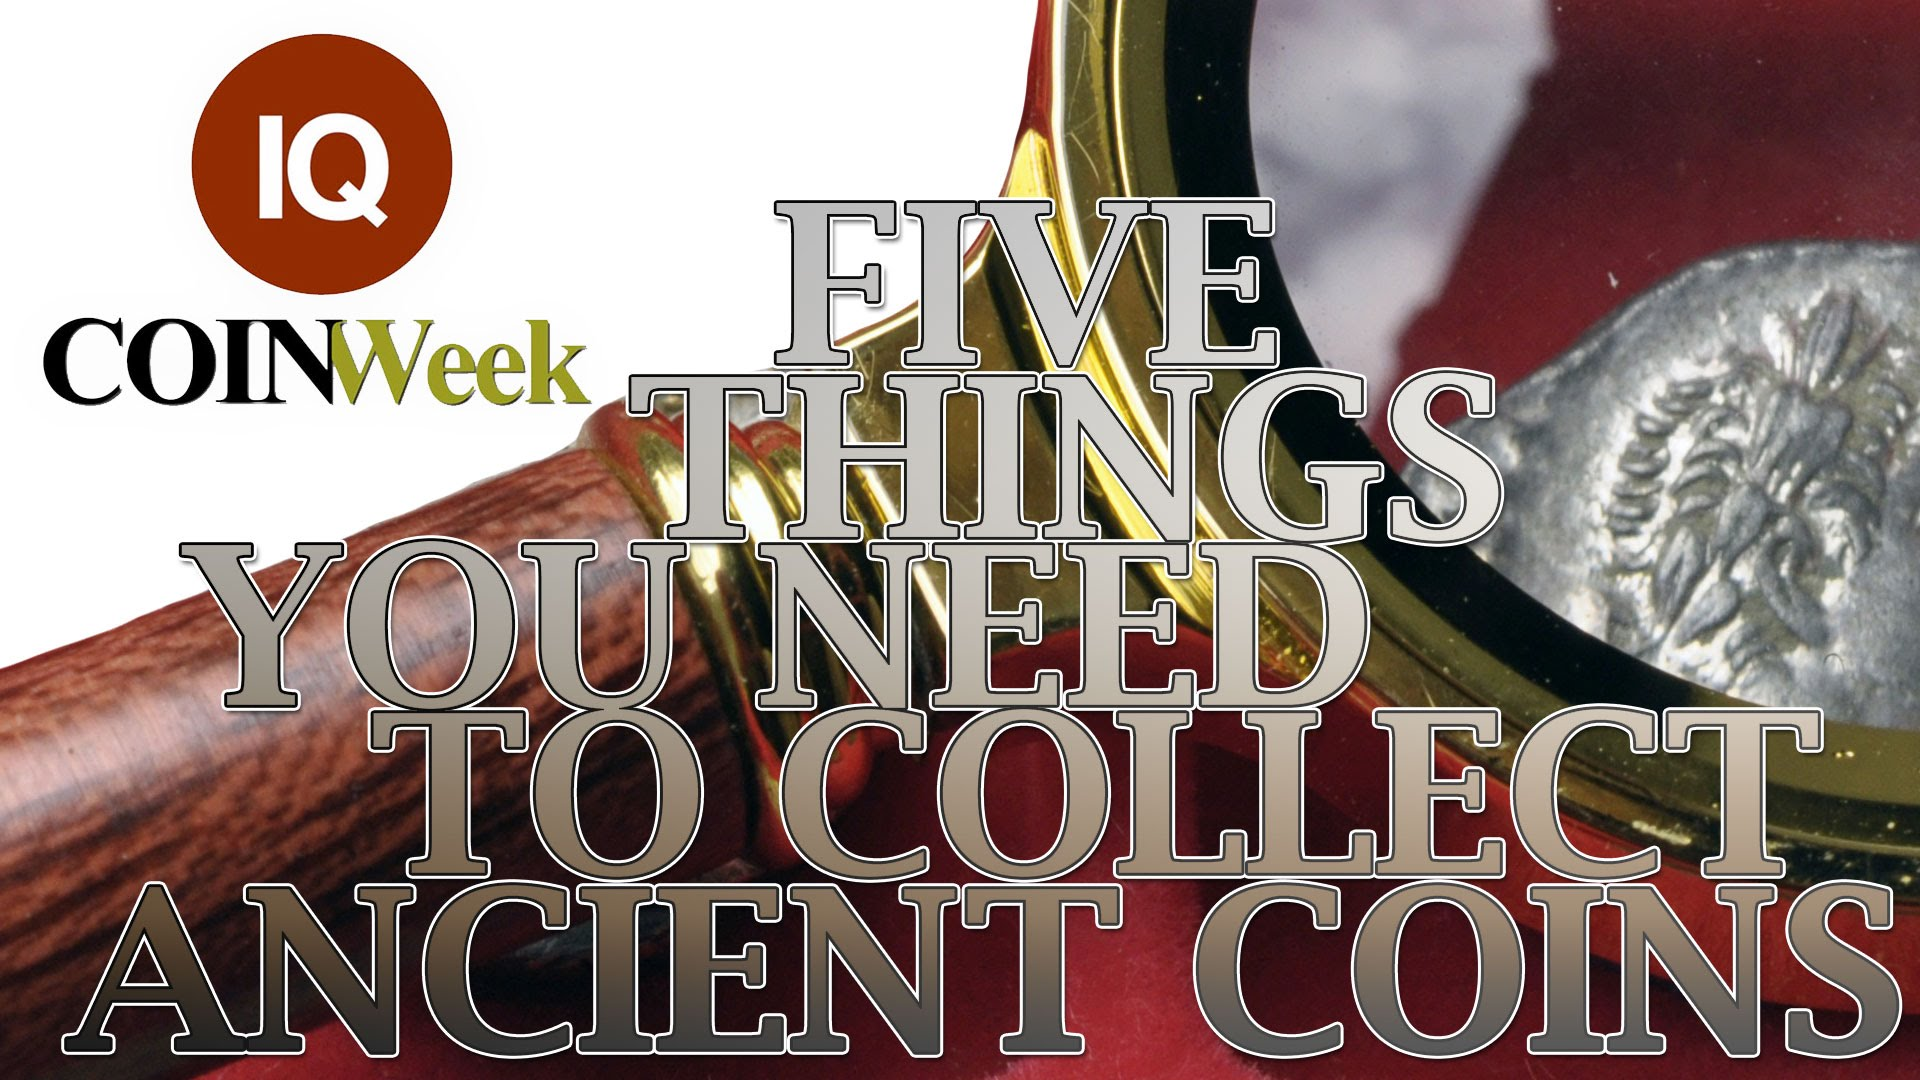 5 Basic Things a BEGINNER Ancient Coin Collector Needs